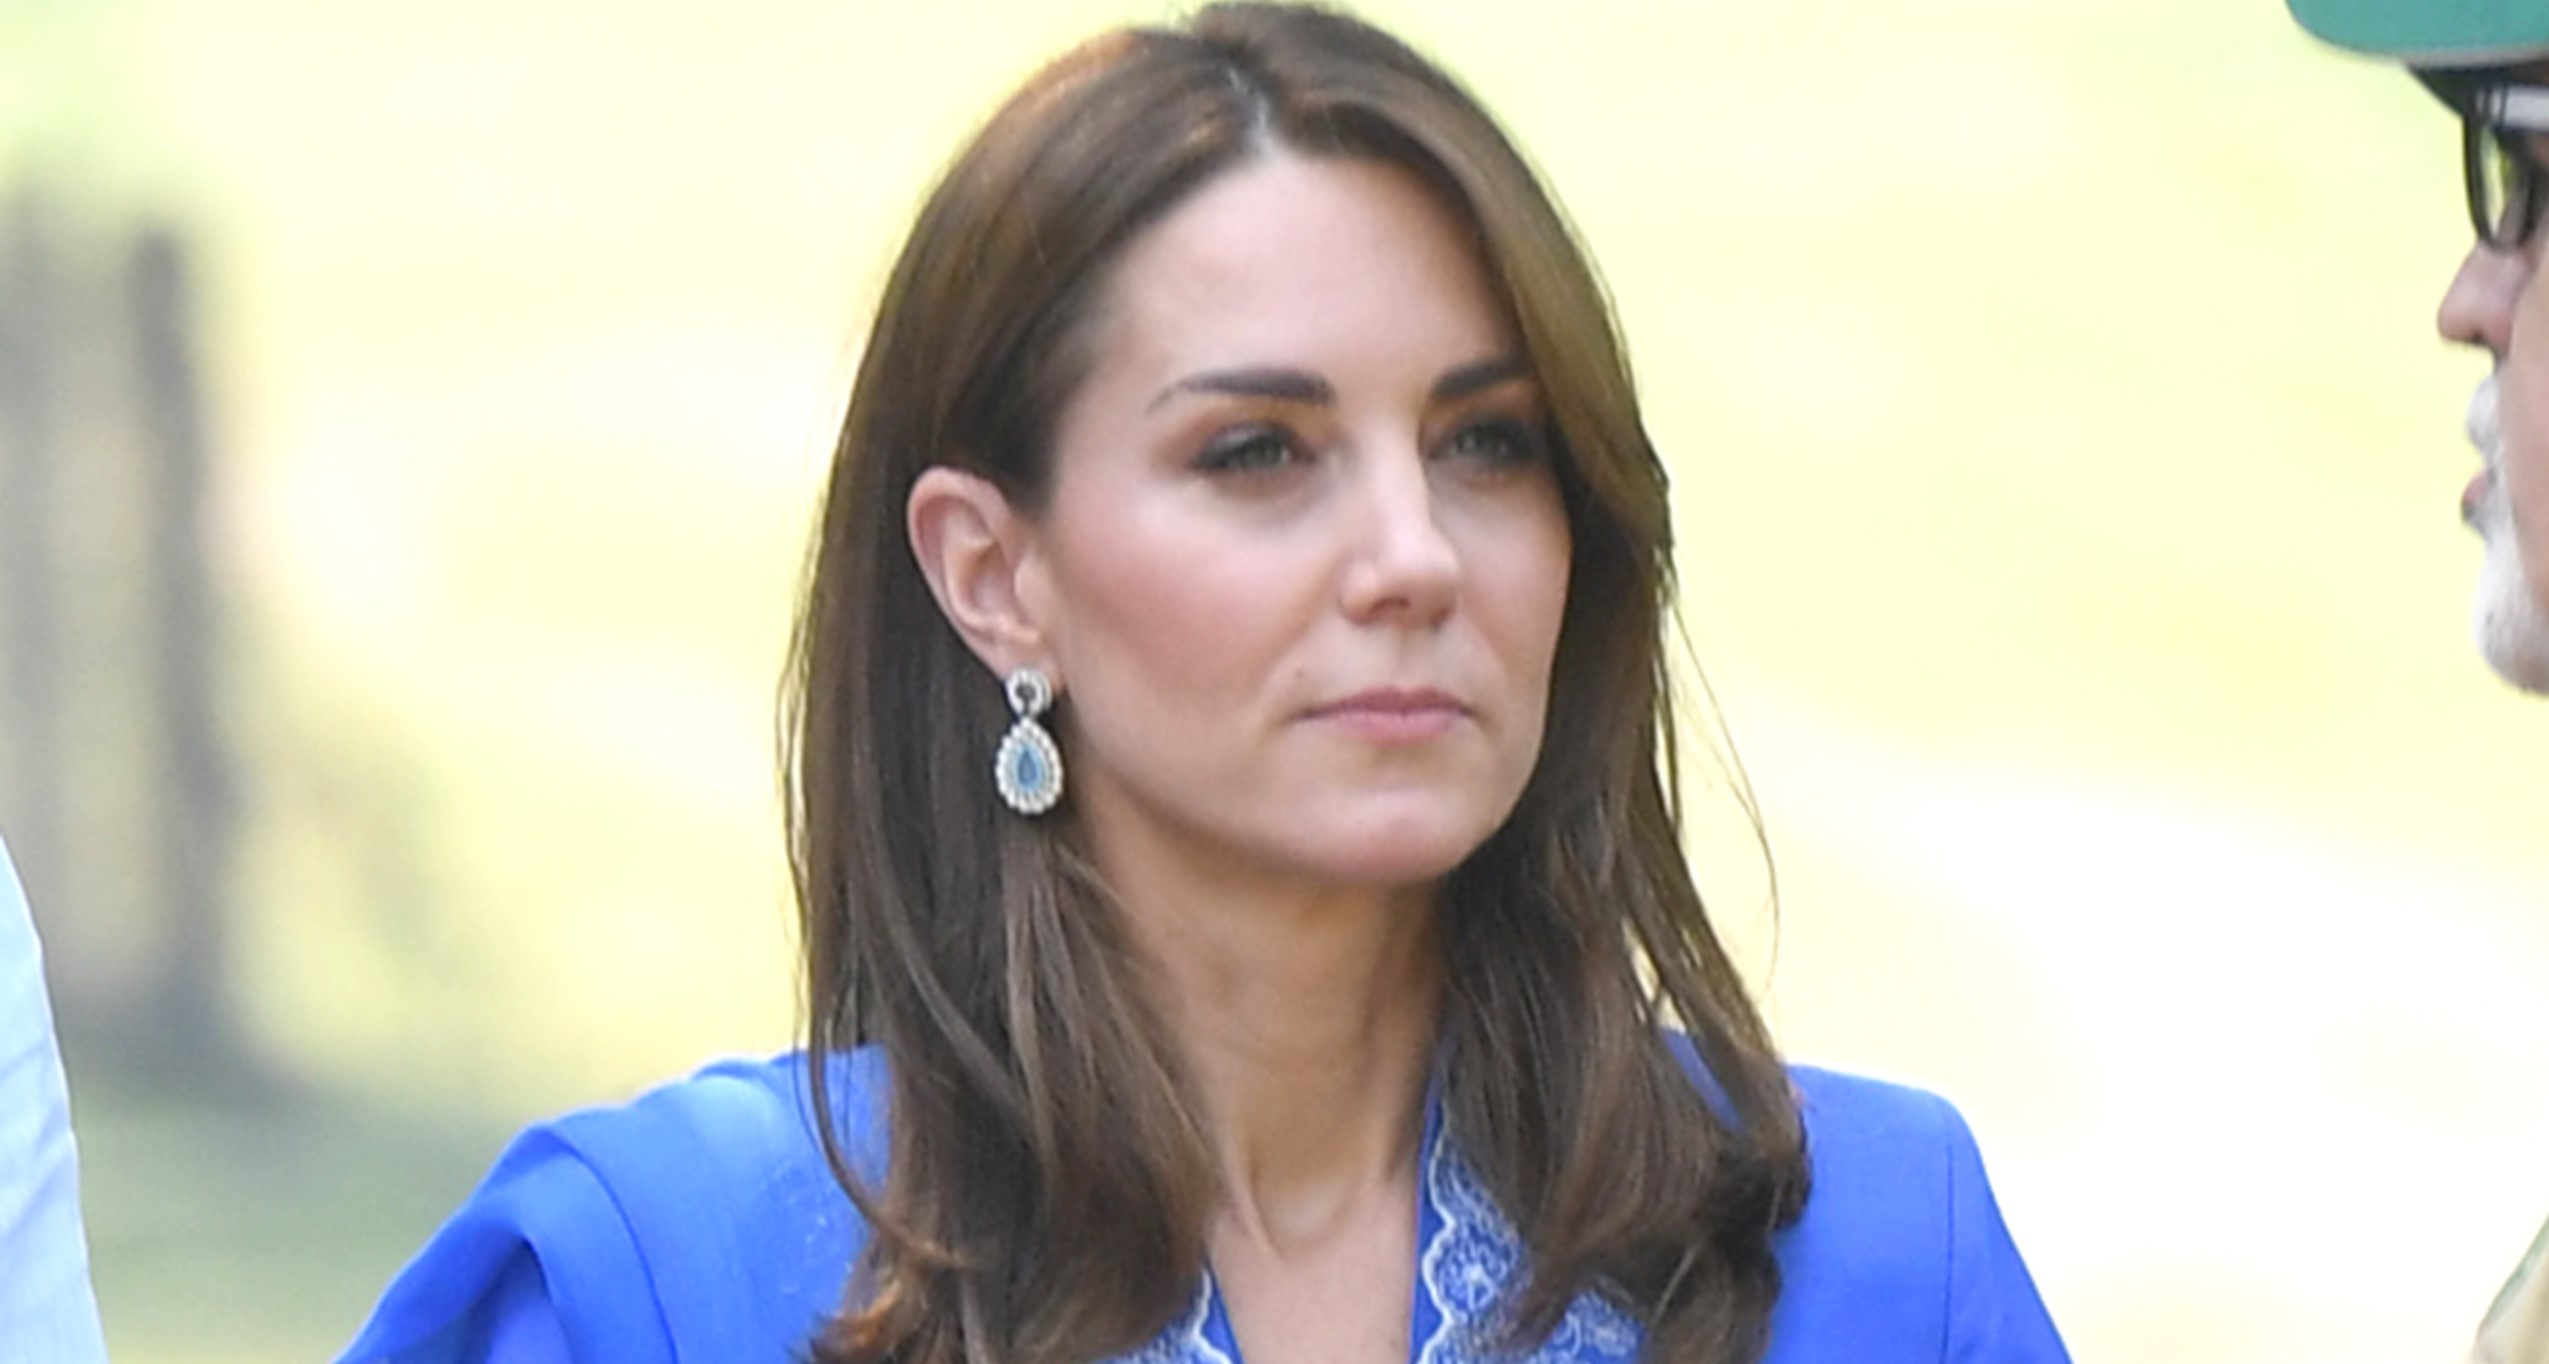 Kate Middleton stuns in a traditional outfit at the Badshahi Mosque